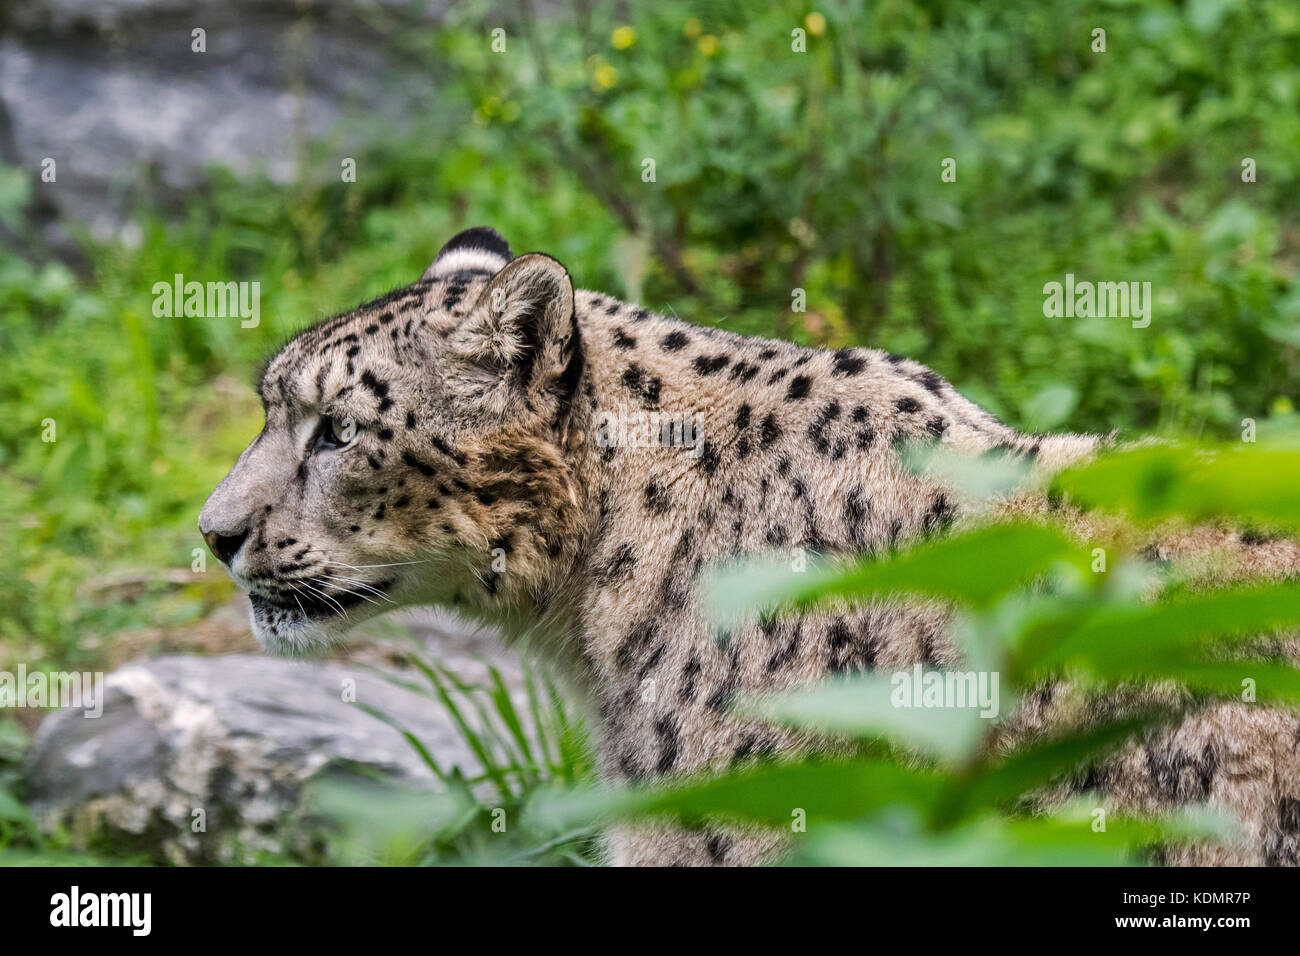 Snow leopard / ounce (Panthera uncia / Uncia uncia) stalking prey, native to the mountain ranges of Central and - Stock Image